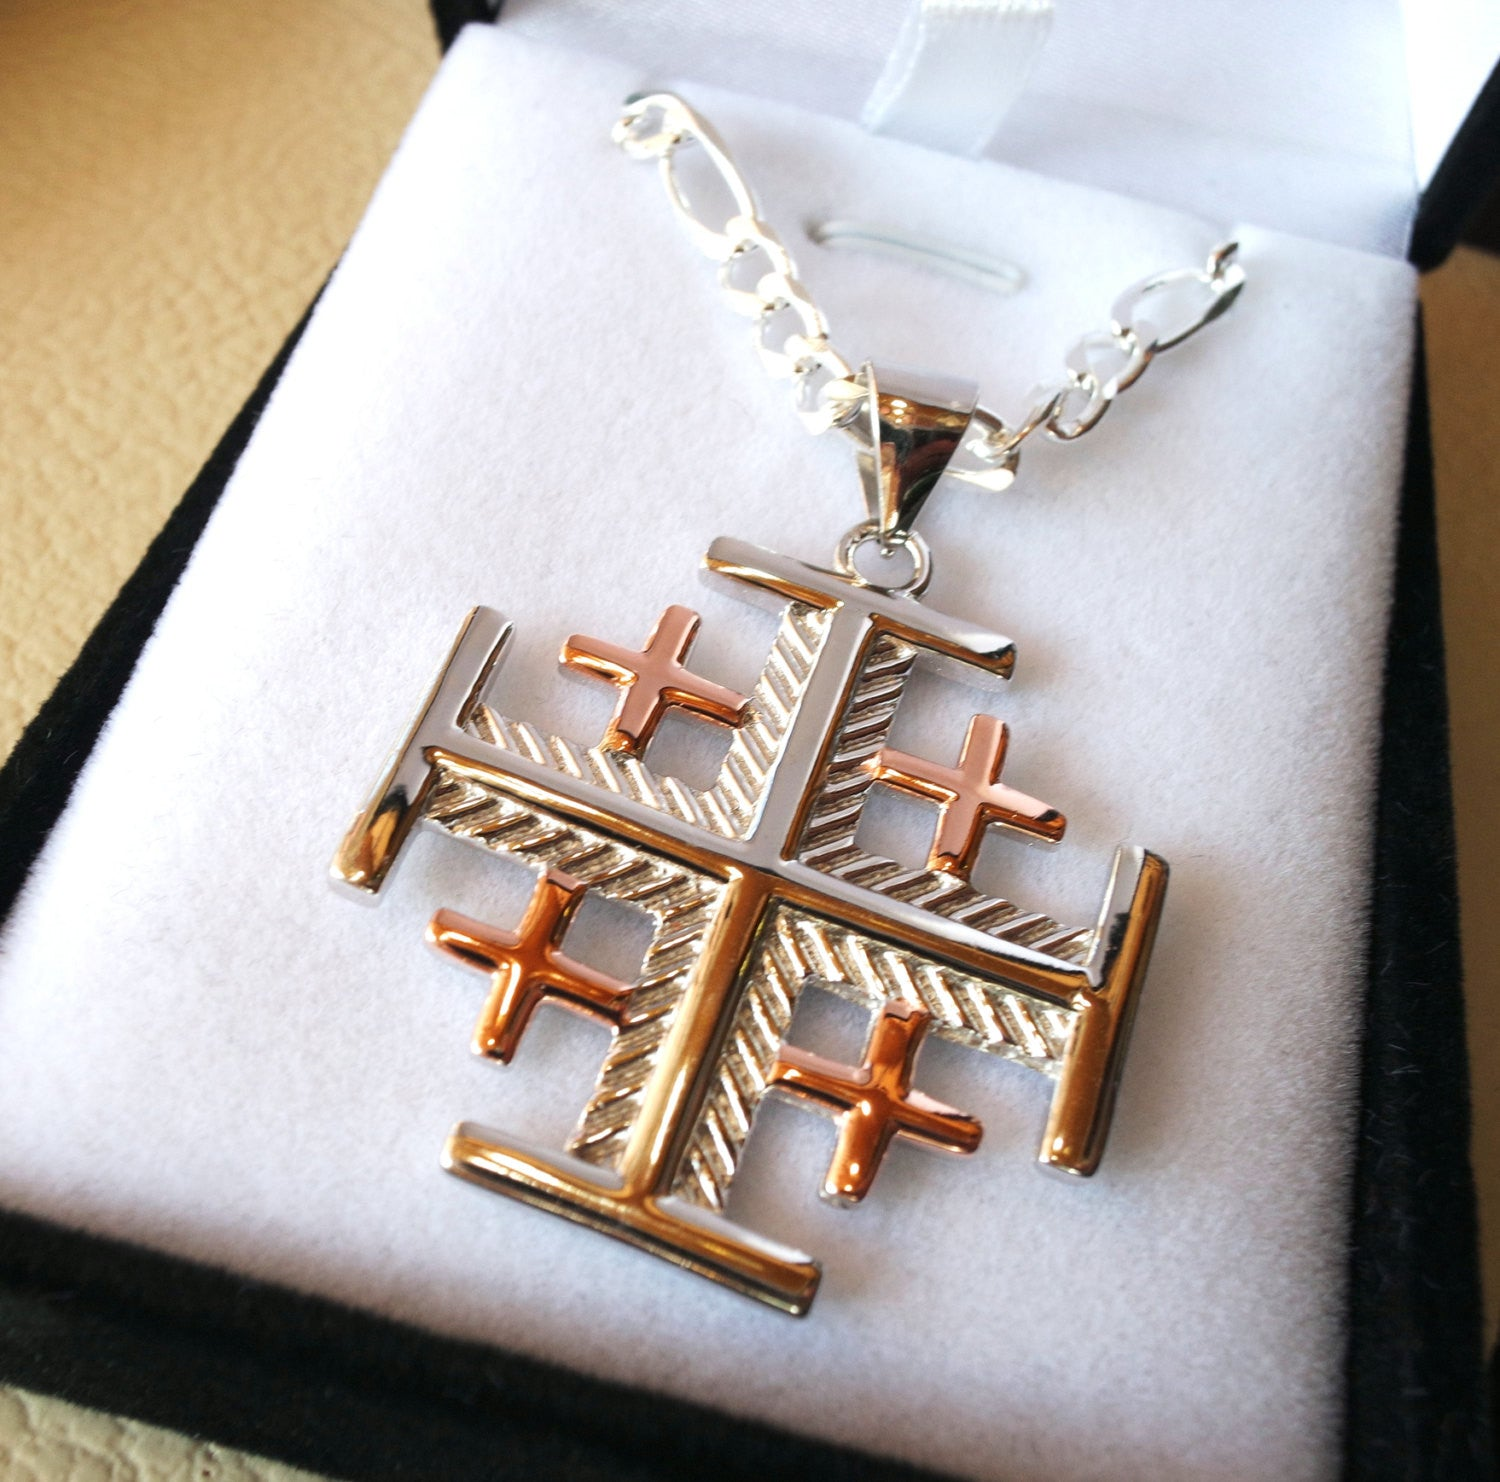 jerusalem supplies by ethiopia huge cross pendant shimbra jewelry making in craft made pin